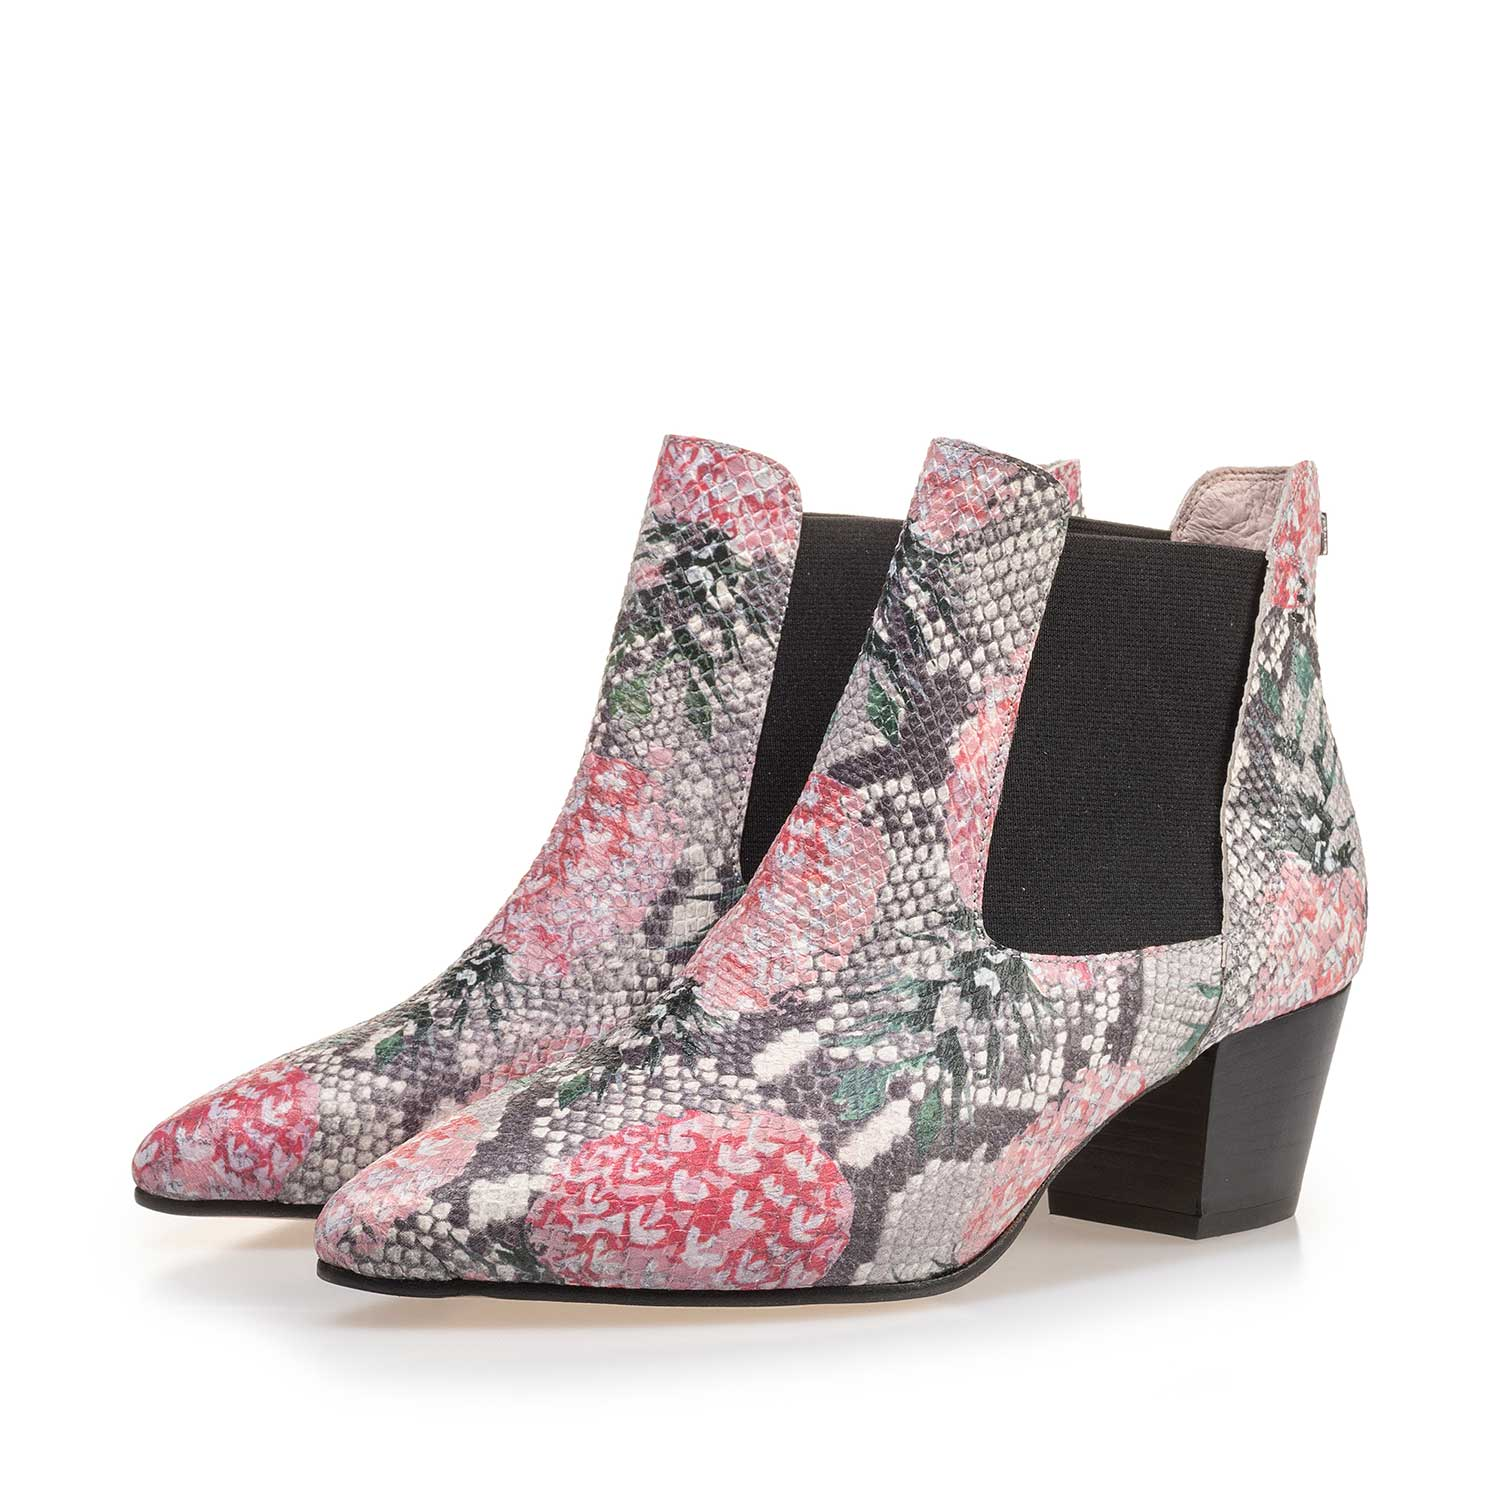 85250/02 - Multi-coloured leather Chelsea boot with printed motif